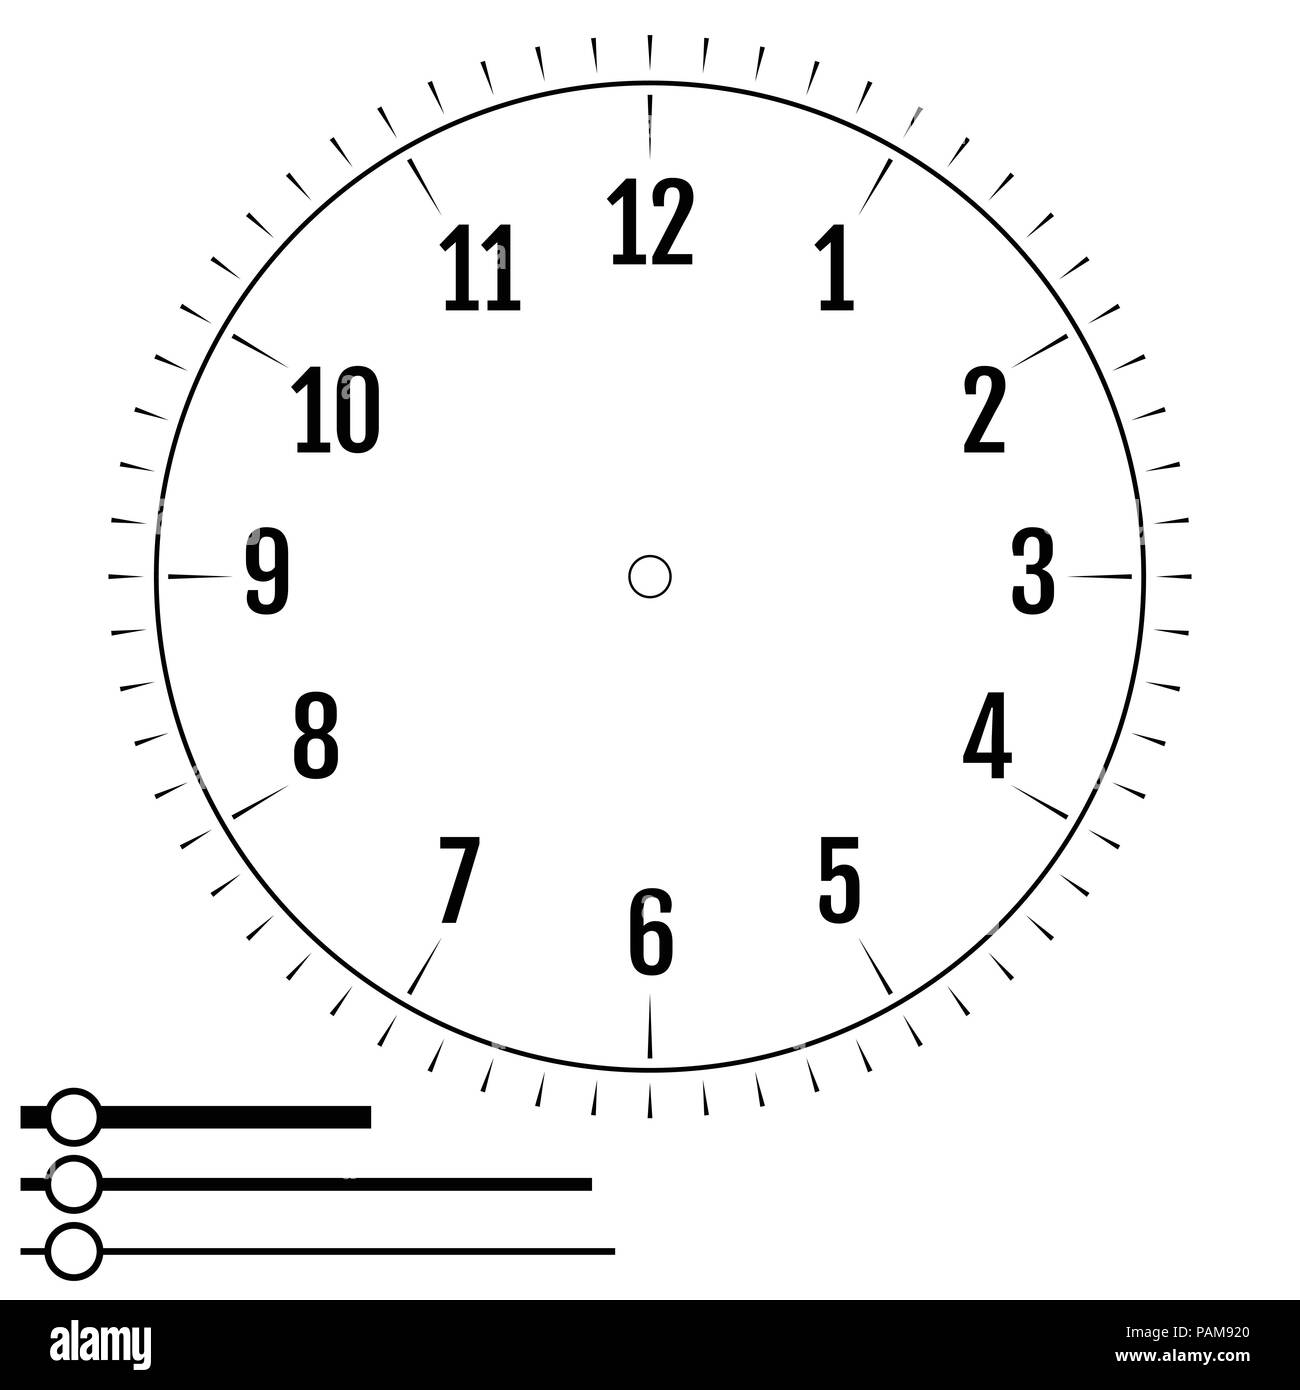 Clock Face Round Design For Men Blank Display Dial Of Mechanical Electrical Device With